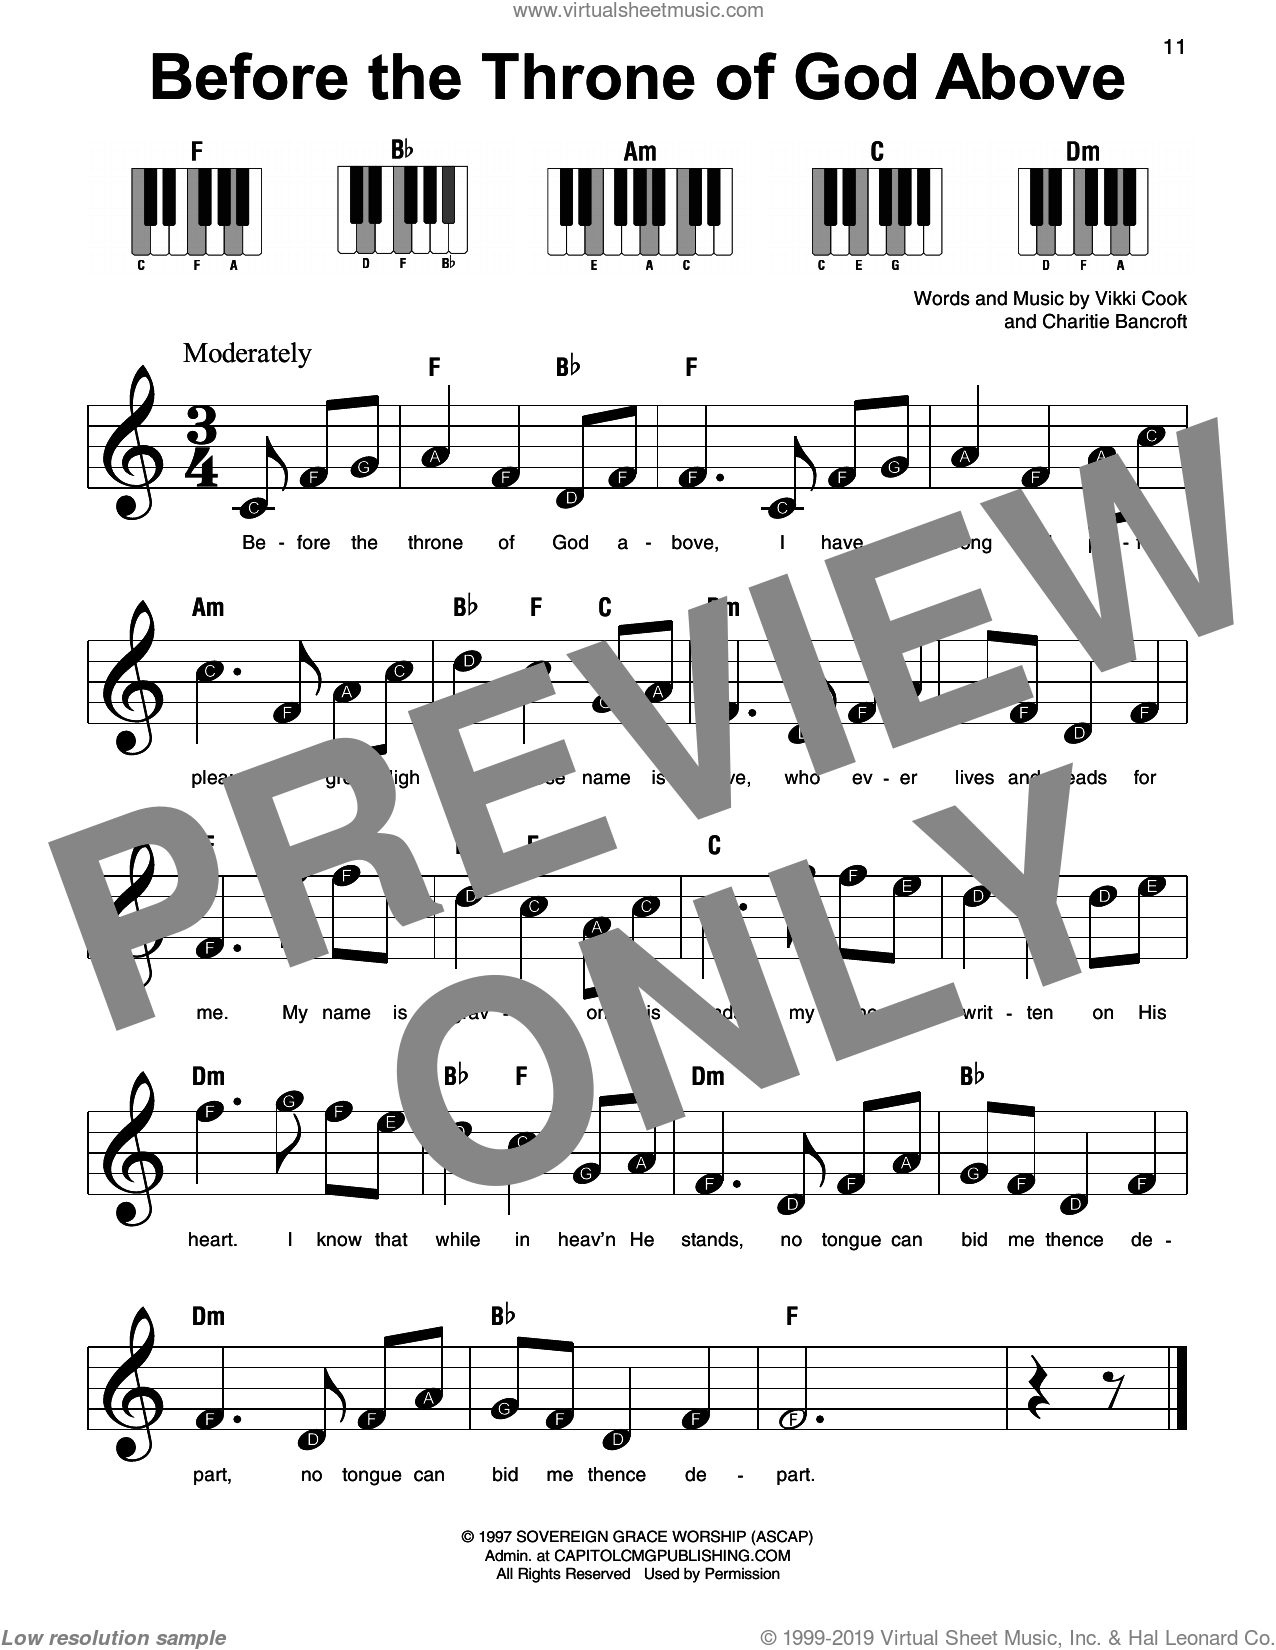 Before The Throne Of God Above sheet music for piano solo by Shane & Shane, Charitie Bancroft and Vikki Cook, beginner skill level